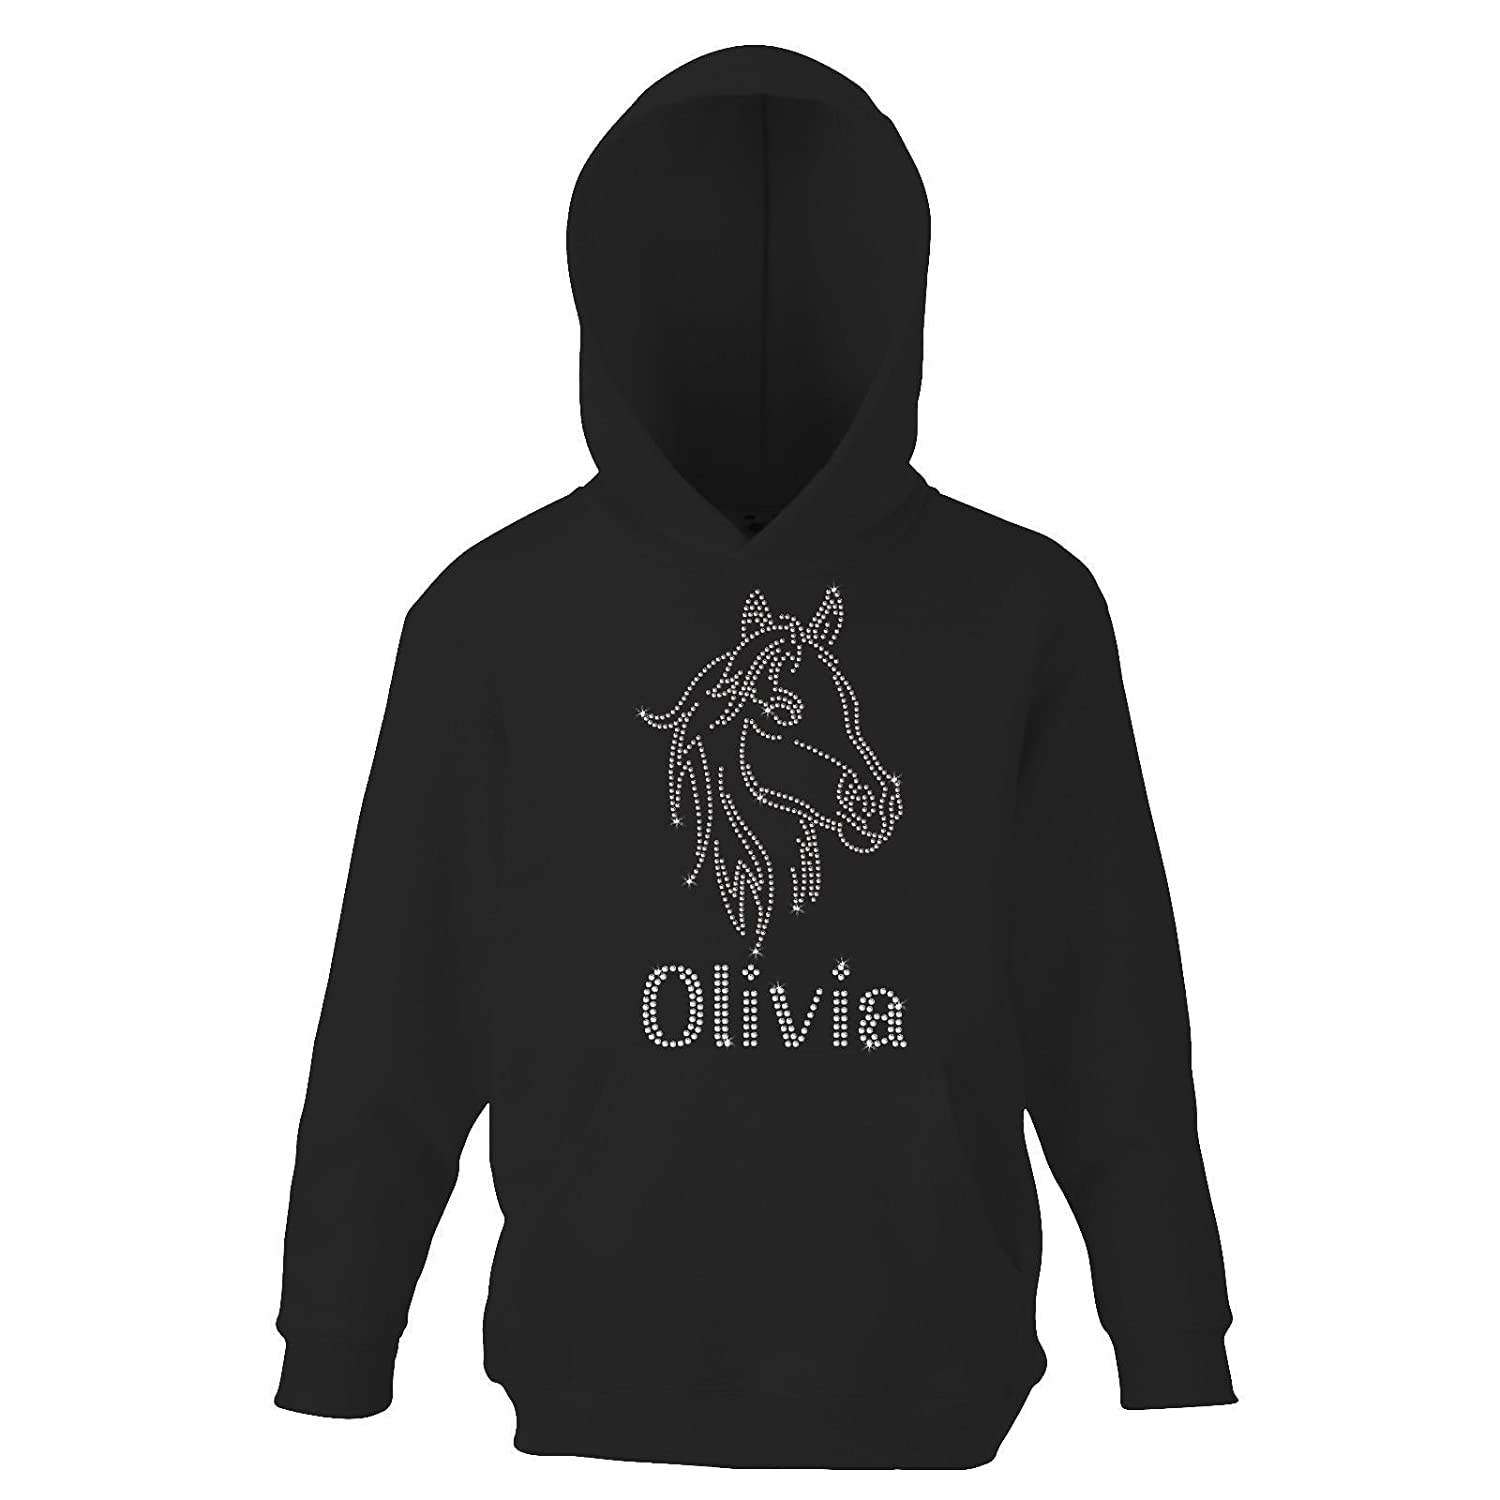 Black CLEAR 9-11 Years Girl's Horse Face riding Personalised Hoodie Crystal Dance Jumper Leotard kids Hoody(K) By Varsany